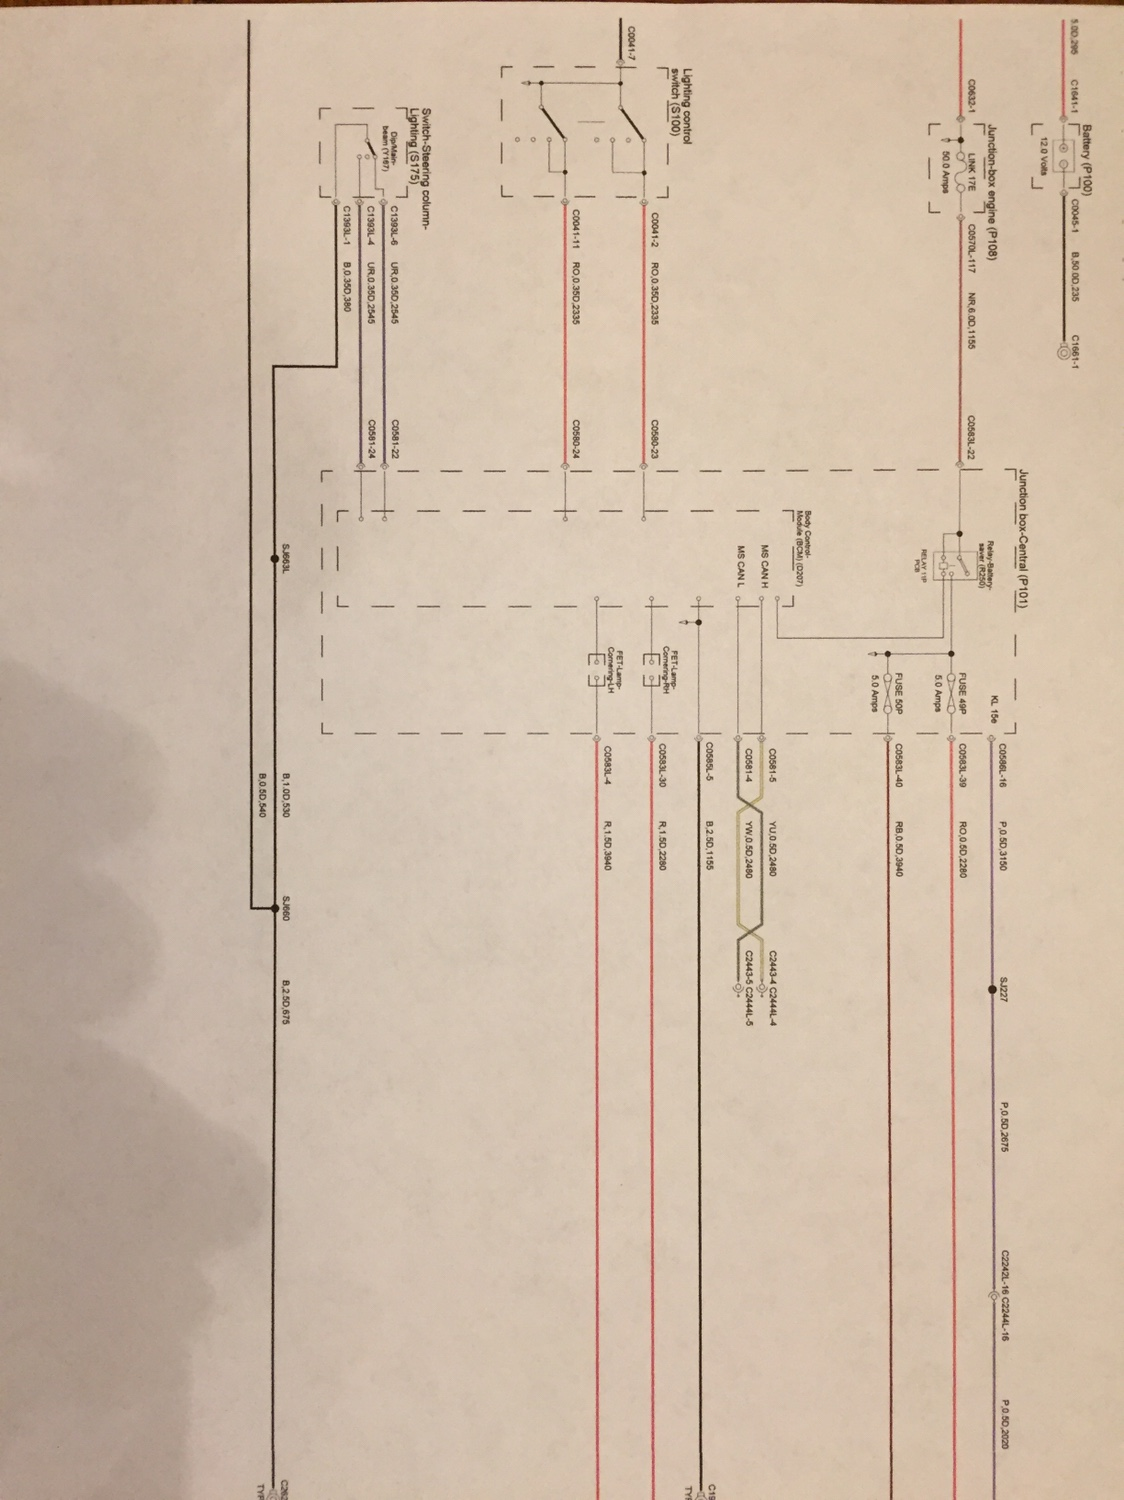 hight resolution of wiring diagram req for headlight switch 2006 rrs and 2012 clifford wiring diagram re q wiring diagram